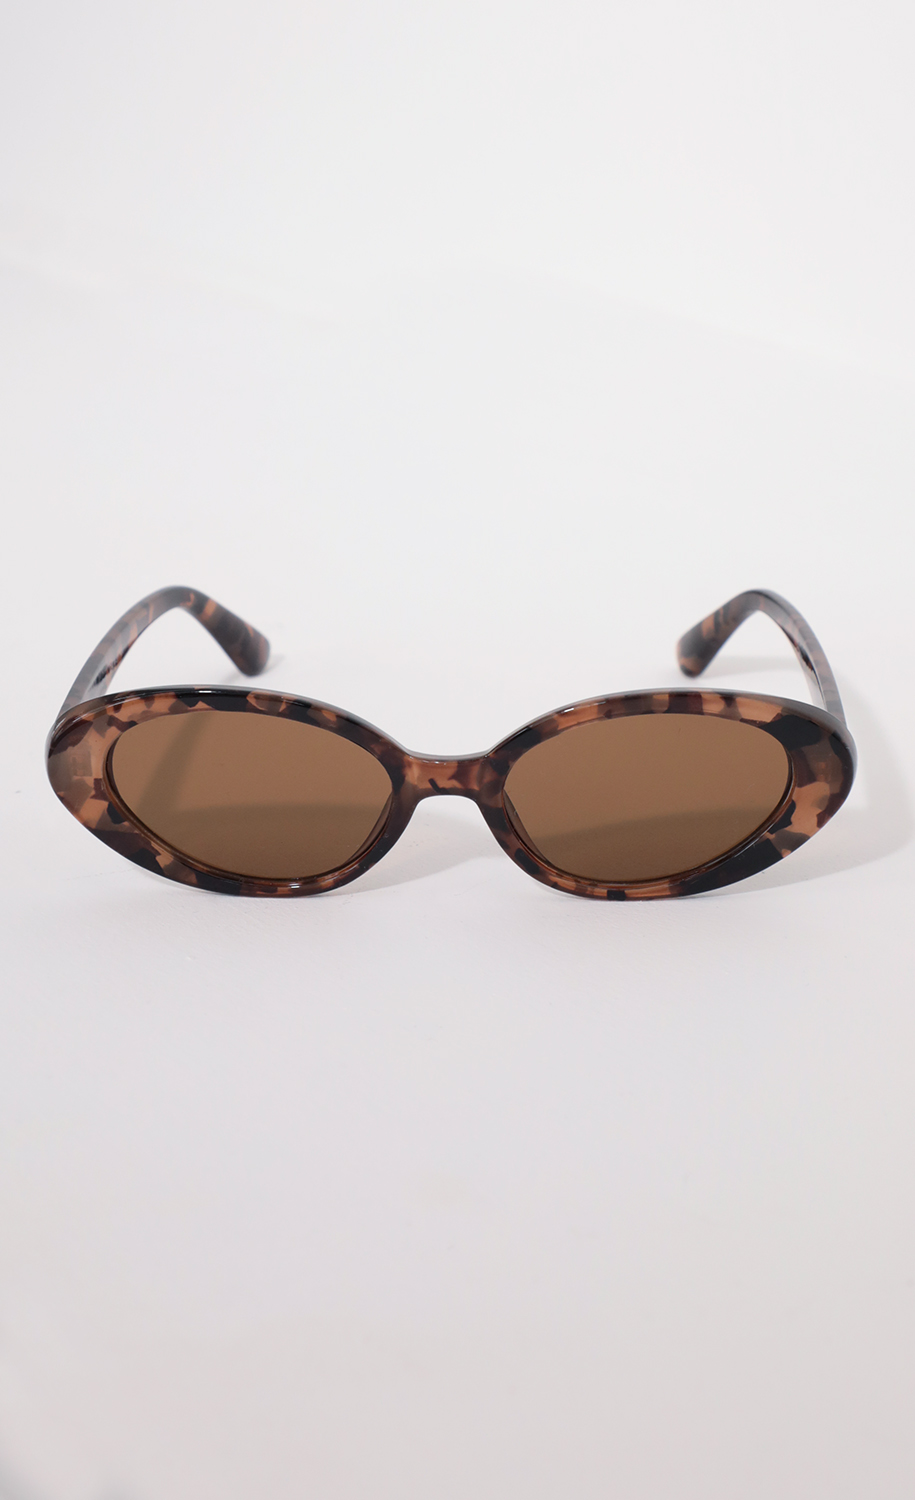 The Jet Setter Sunglasses in Tortoiseshell